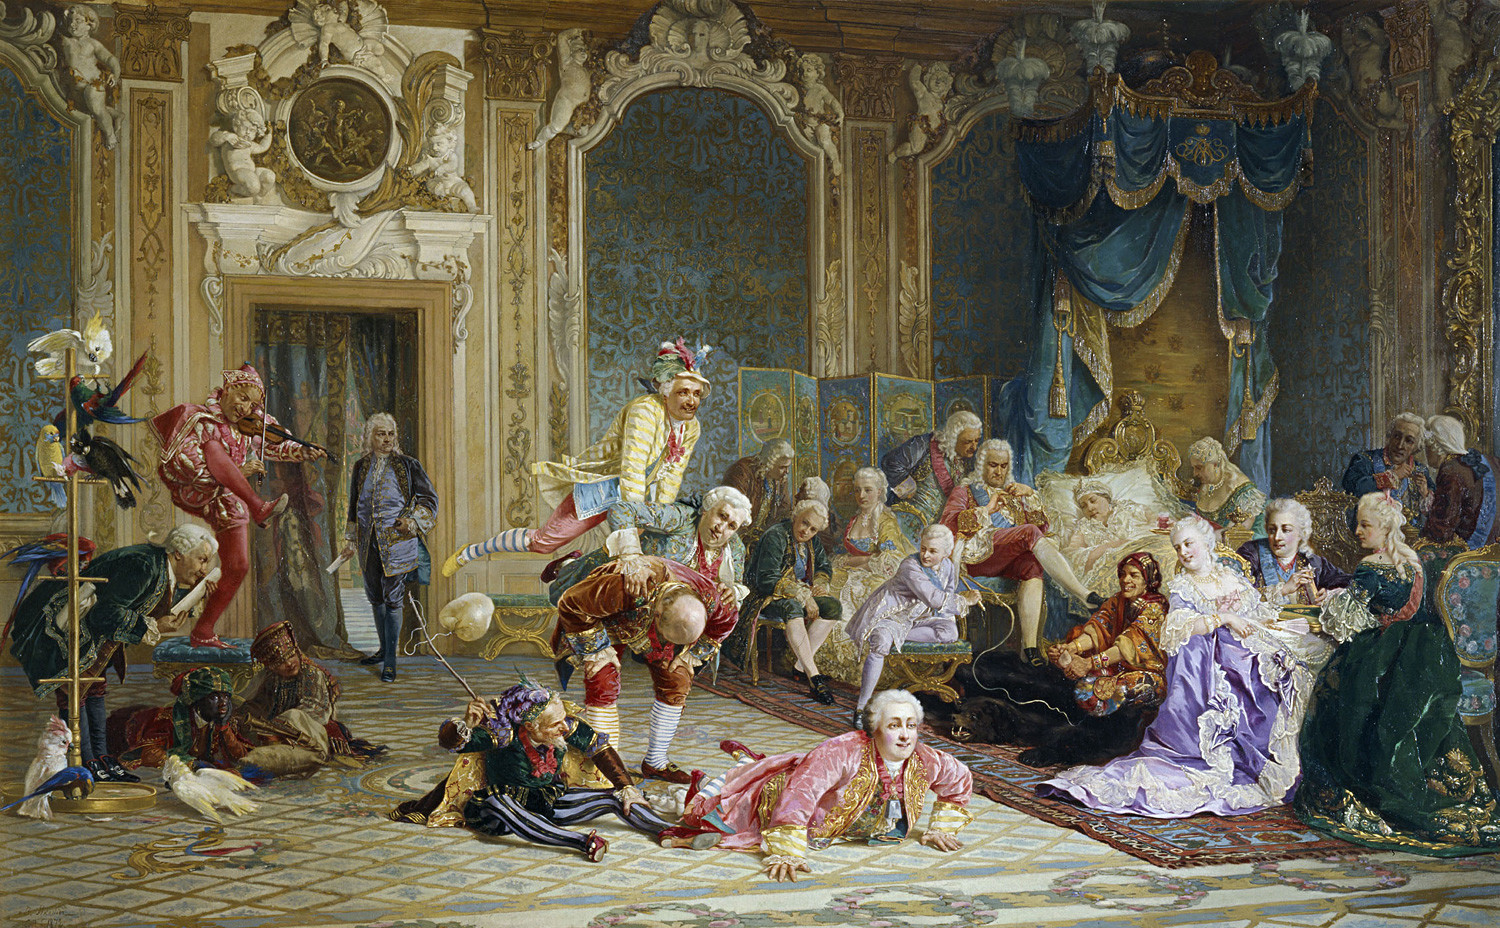 'Jesters at the Court of Empress Anna' by Valery Jacobi